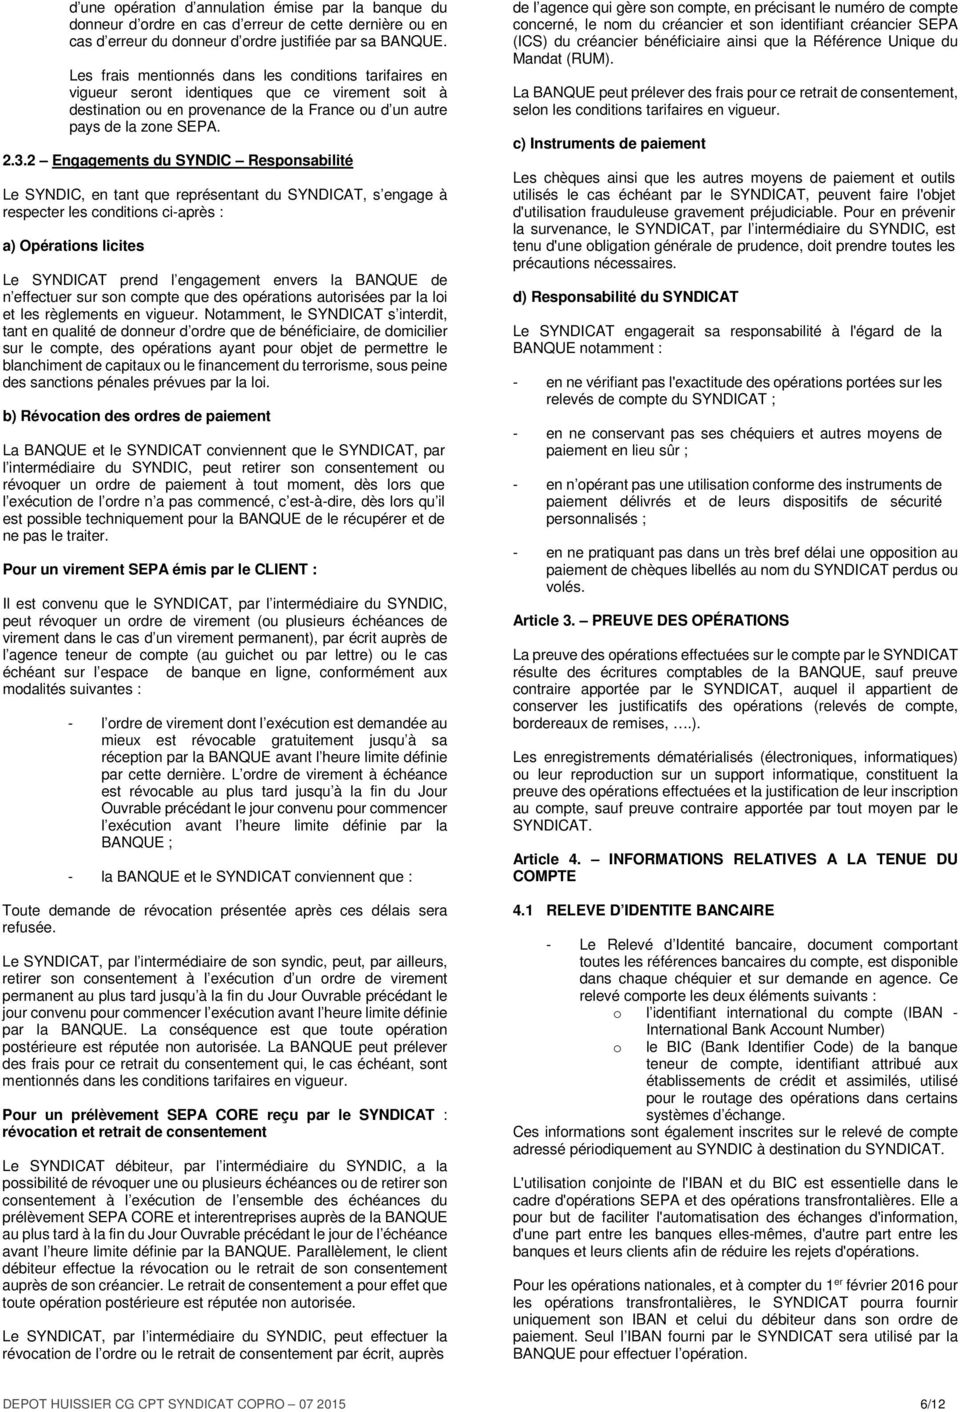 2 Engagements du SYNDIC Responsabilité Le SYNDIC, en tant que représentant du SYNDICAT, s engage à respecter les conditions ci-après : a) Opérations licites Le SYNDICAT prend l engagement envers la